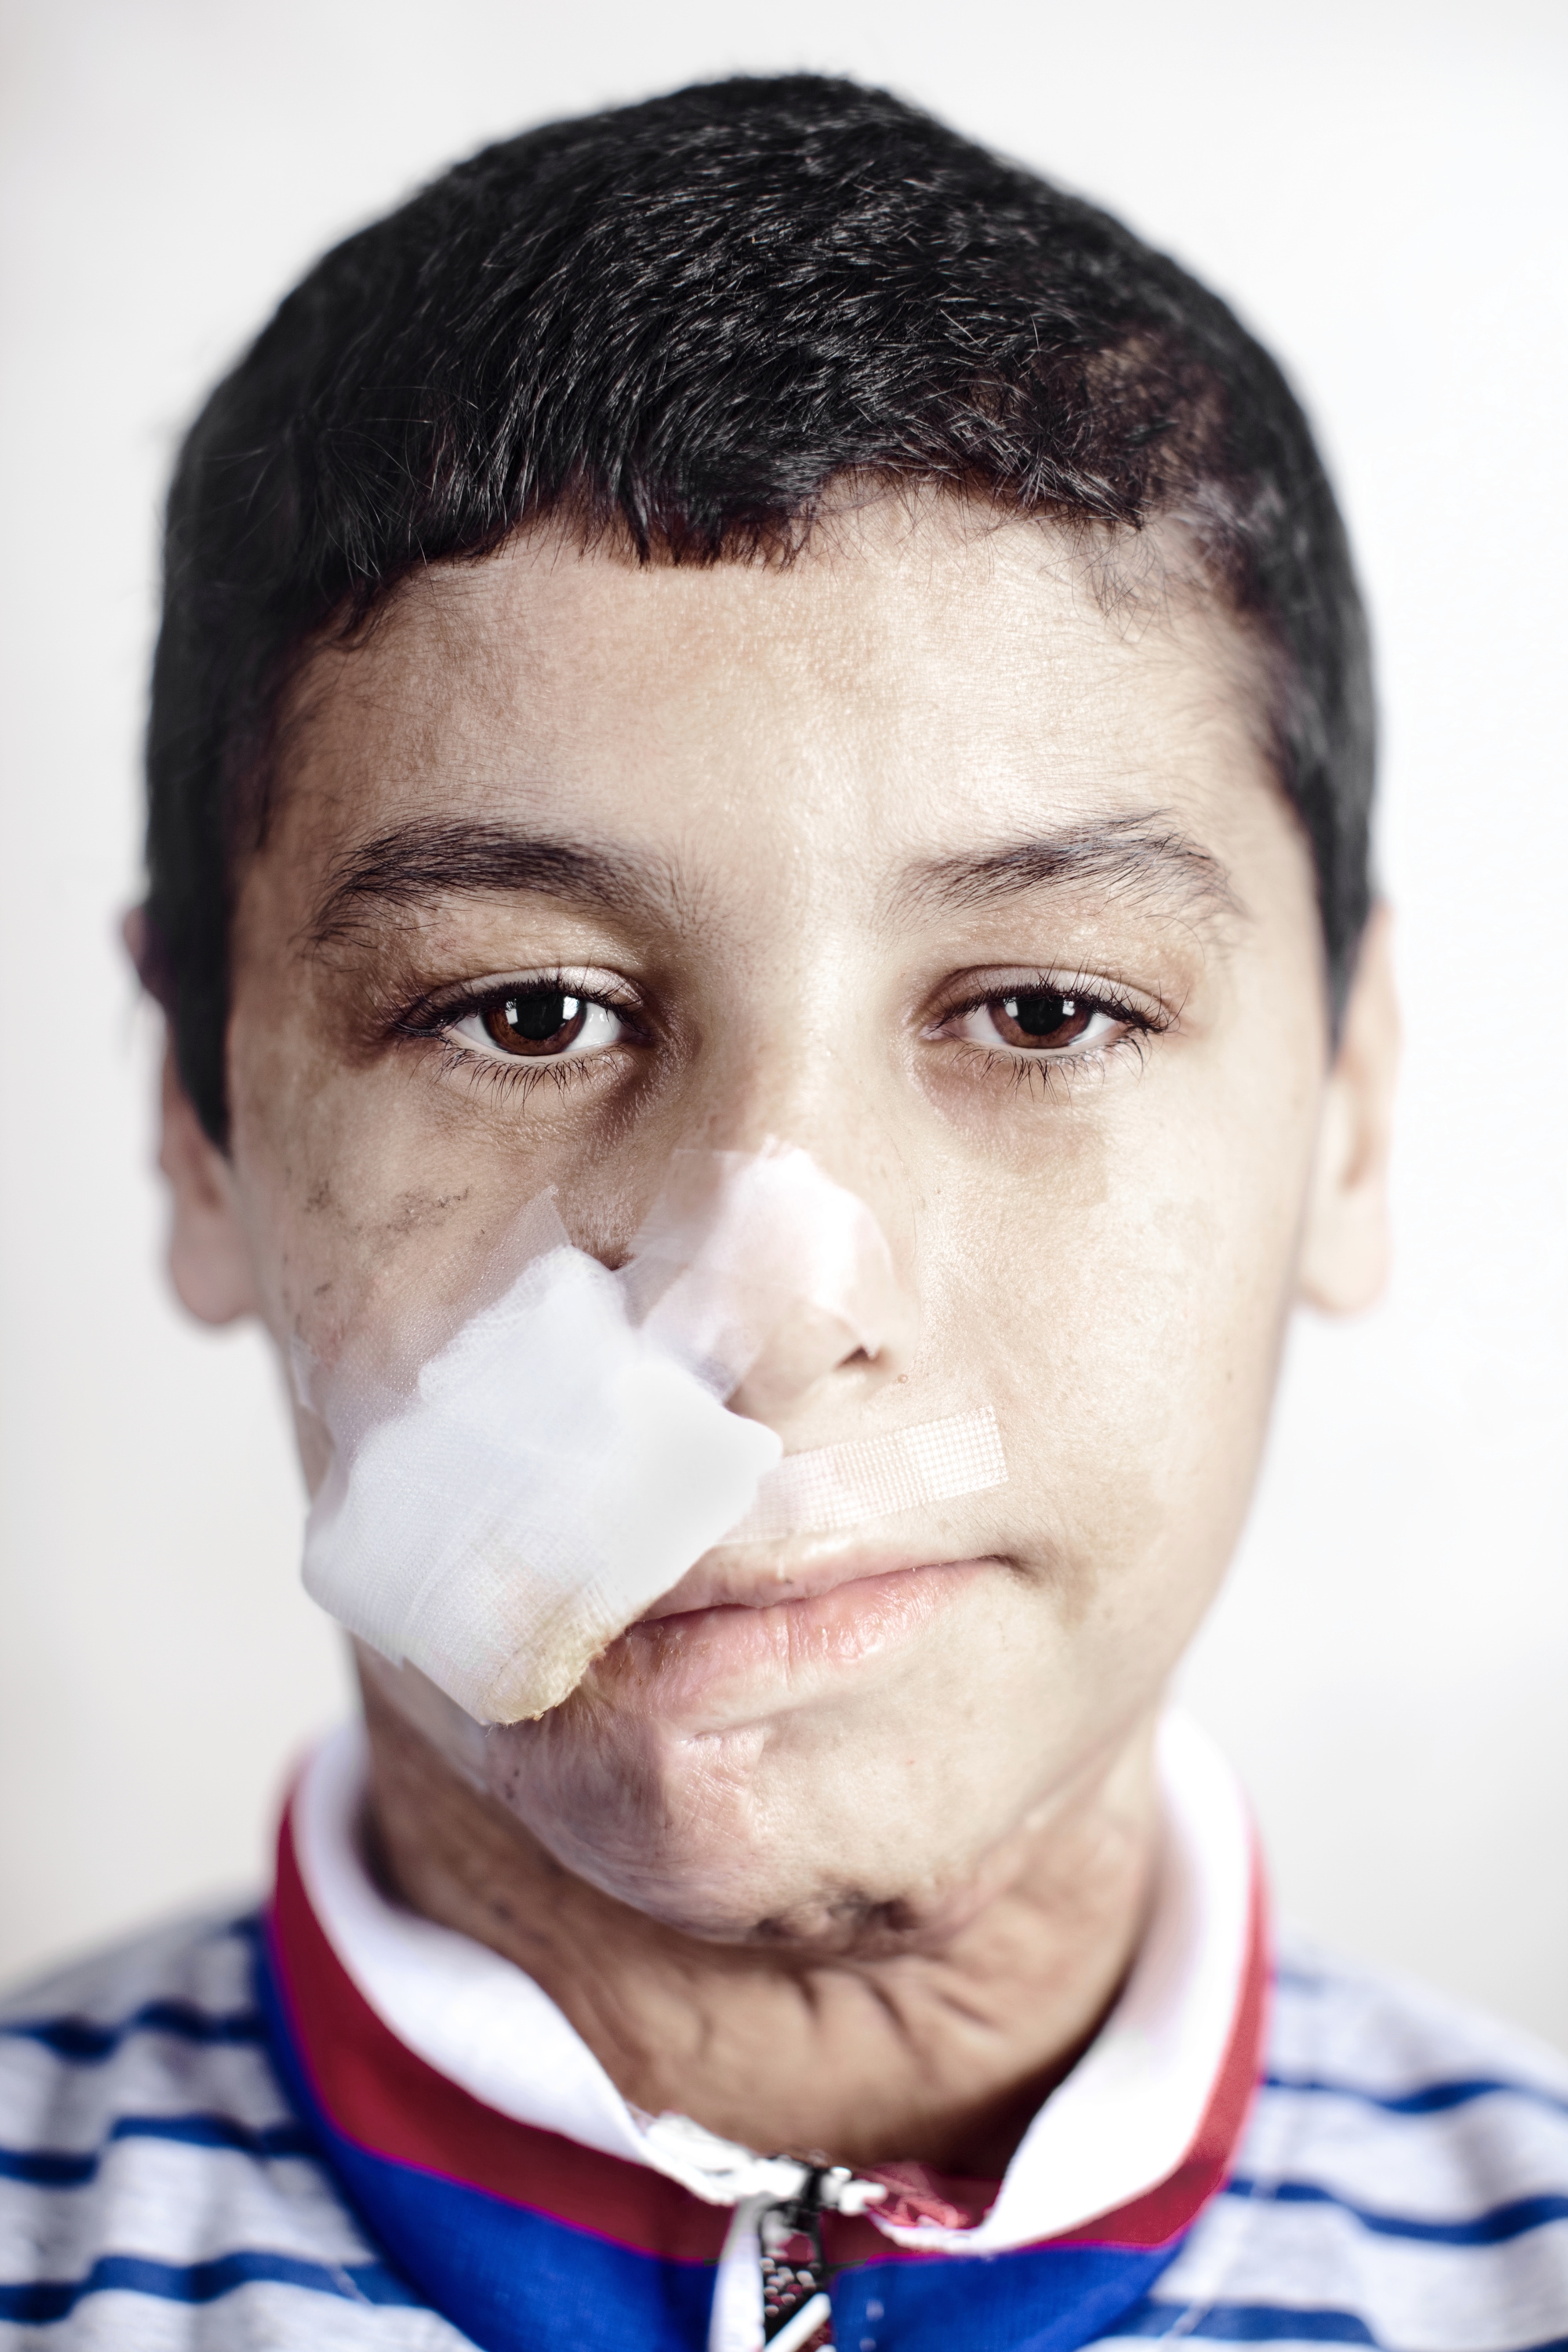 Ahmad Khalifa Mohammed is 13 years old. He is from Diyala and has been in Amman for six months. A car full of explosives rammed into his home. His family was uninjured. He was the sole victim.